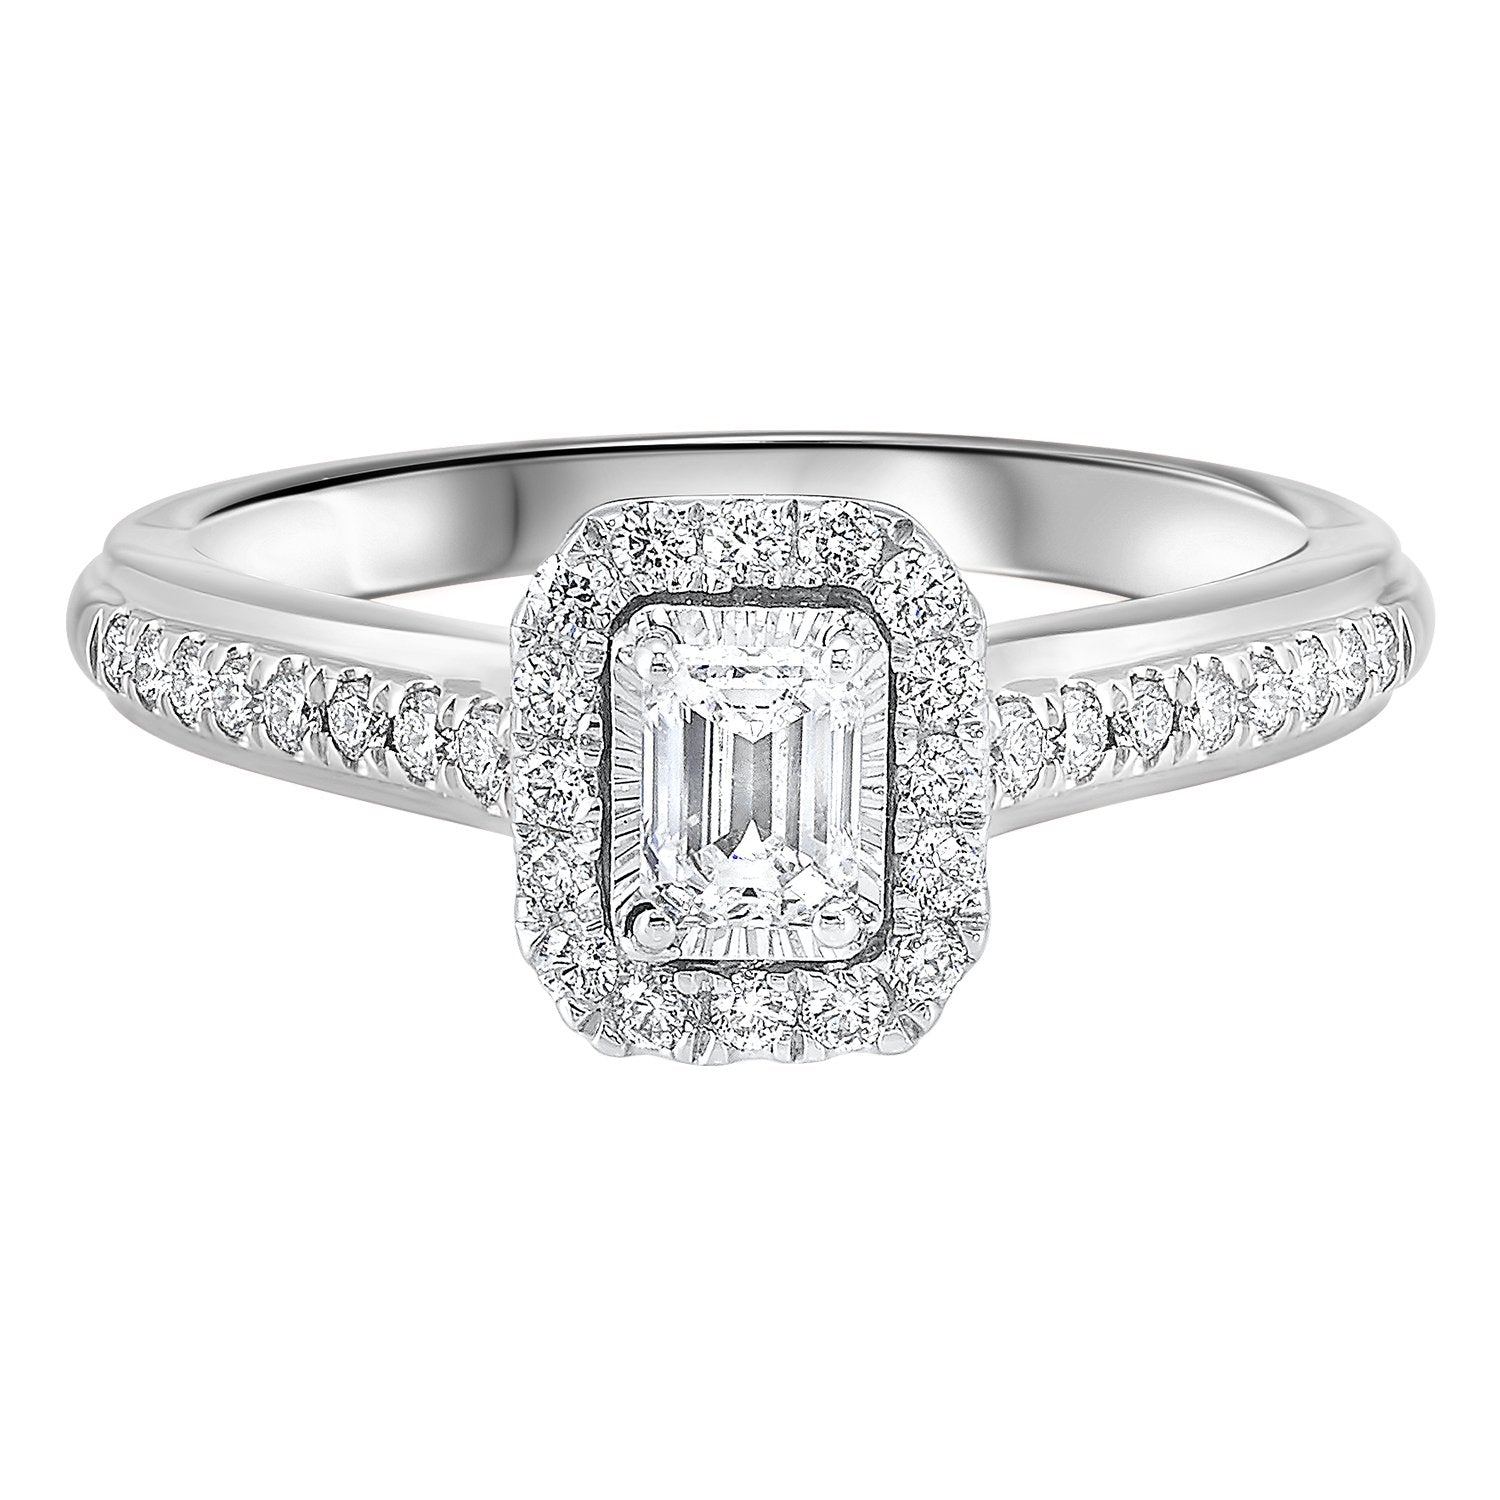 14K White 1/2 CTW Emerald Cut Ring with 1/3 CT center